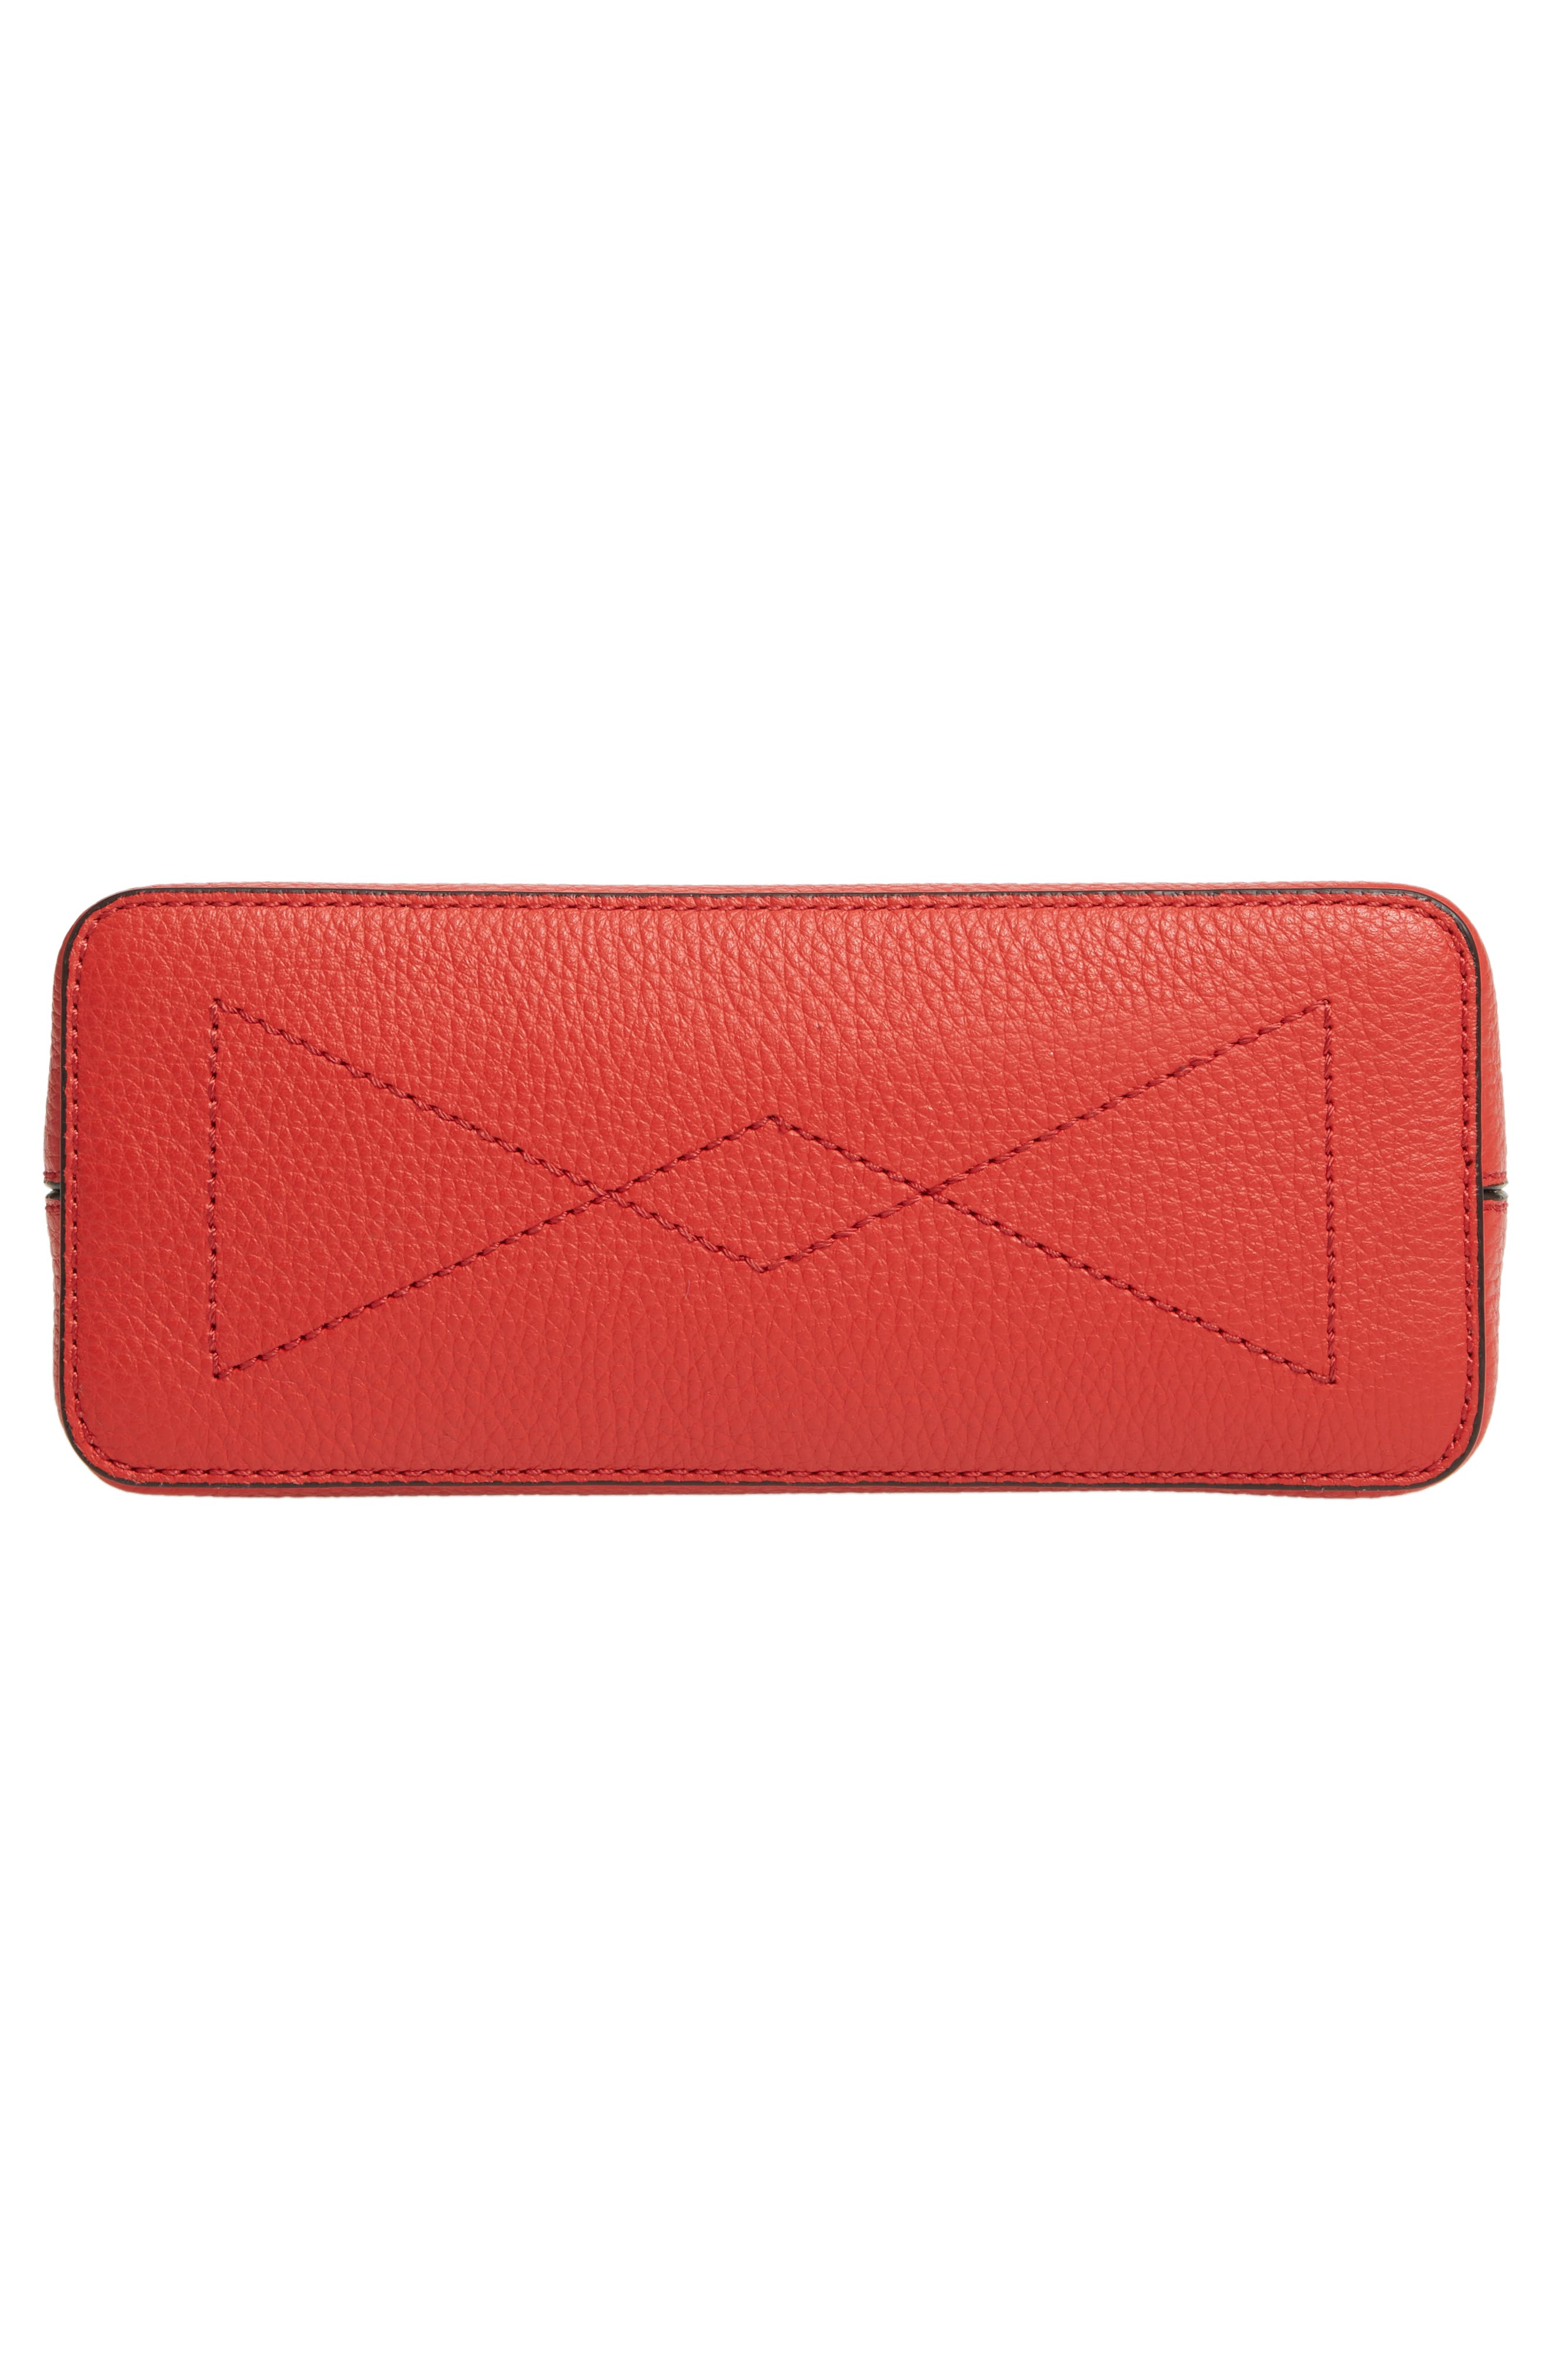 MULBERRY,                             Micro Seaton Leather Convertible Crossbody Bag,                             Alternate thumbnail 6, color,                             HIBISCUS RED